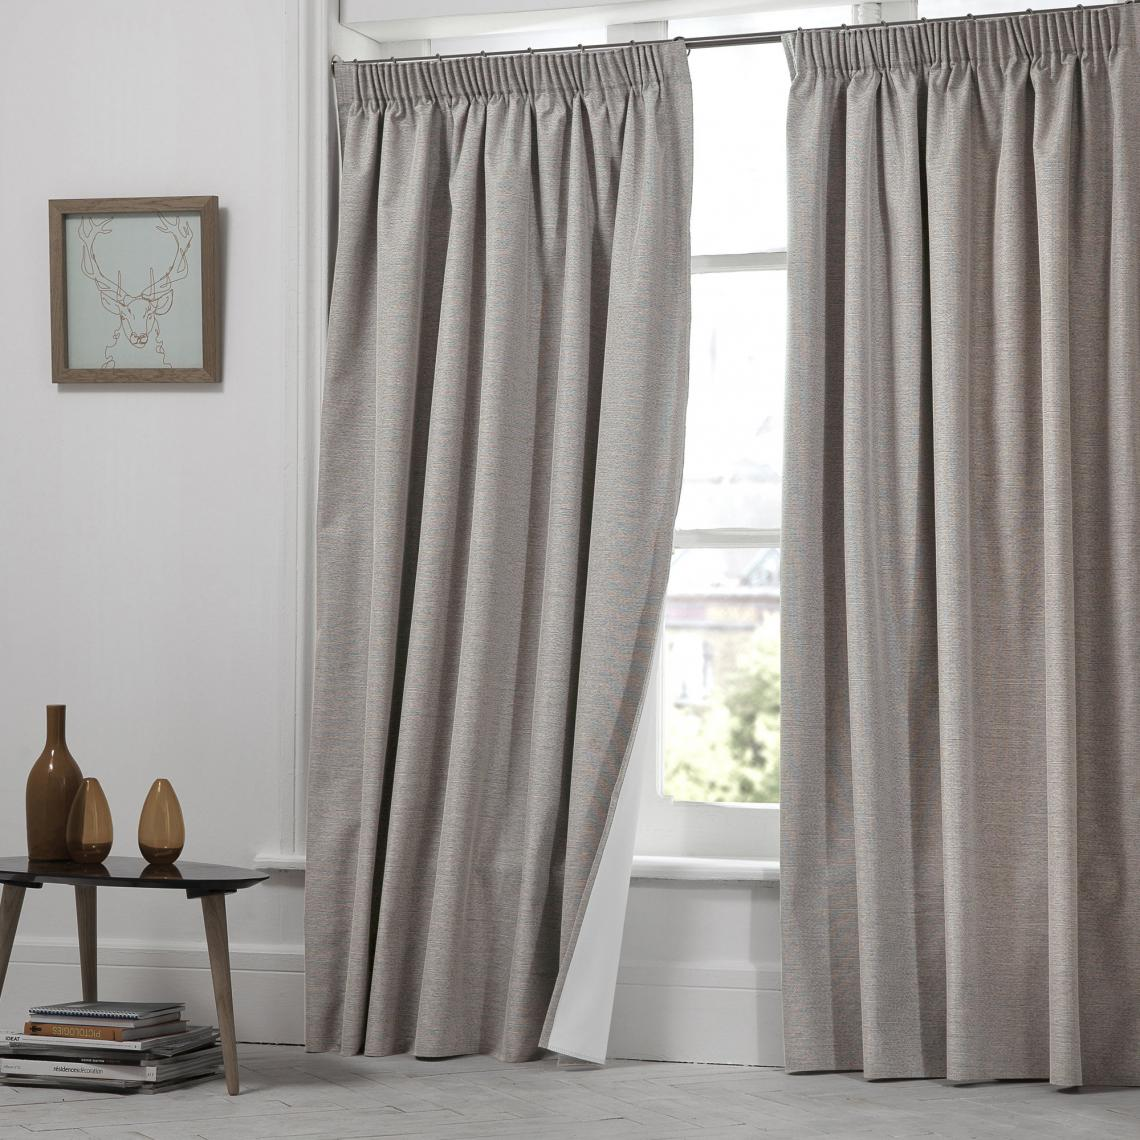 rideau occultant chine a oeillets moondream beige